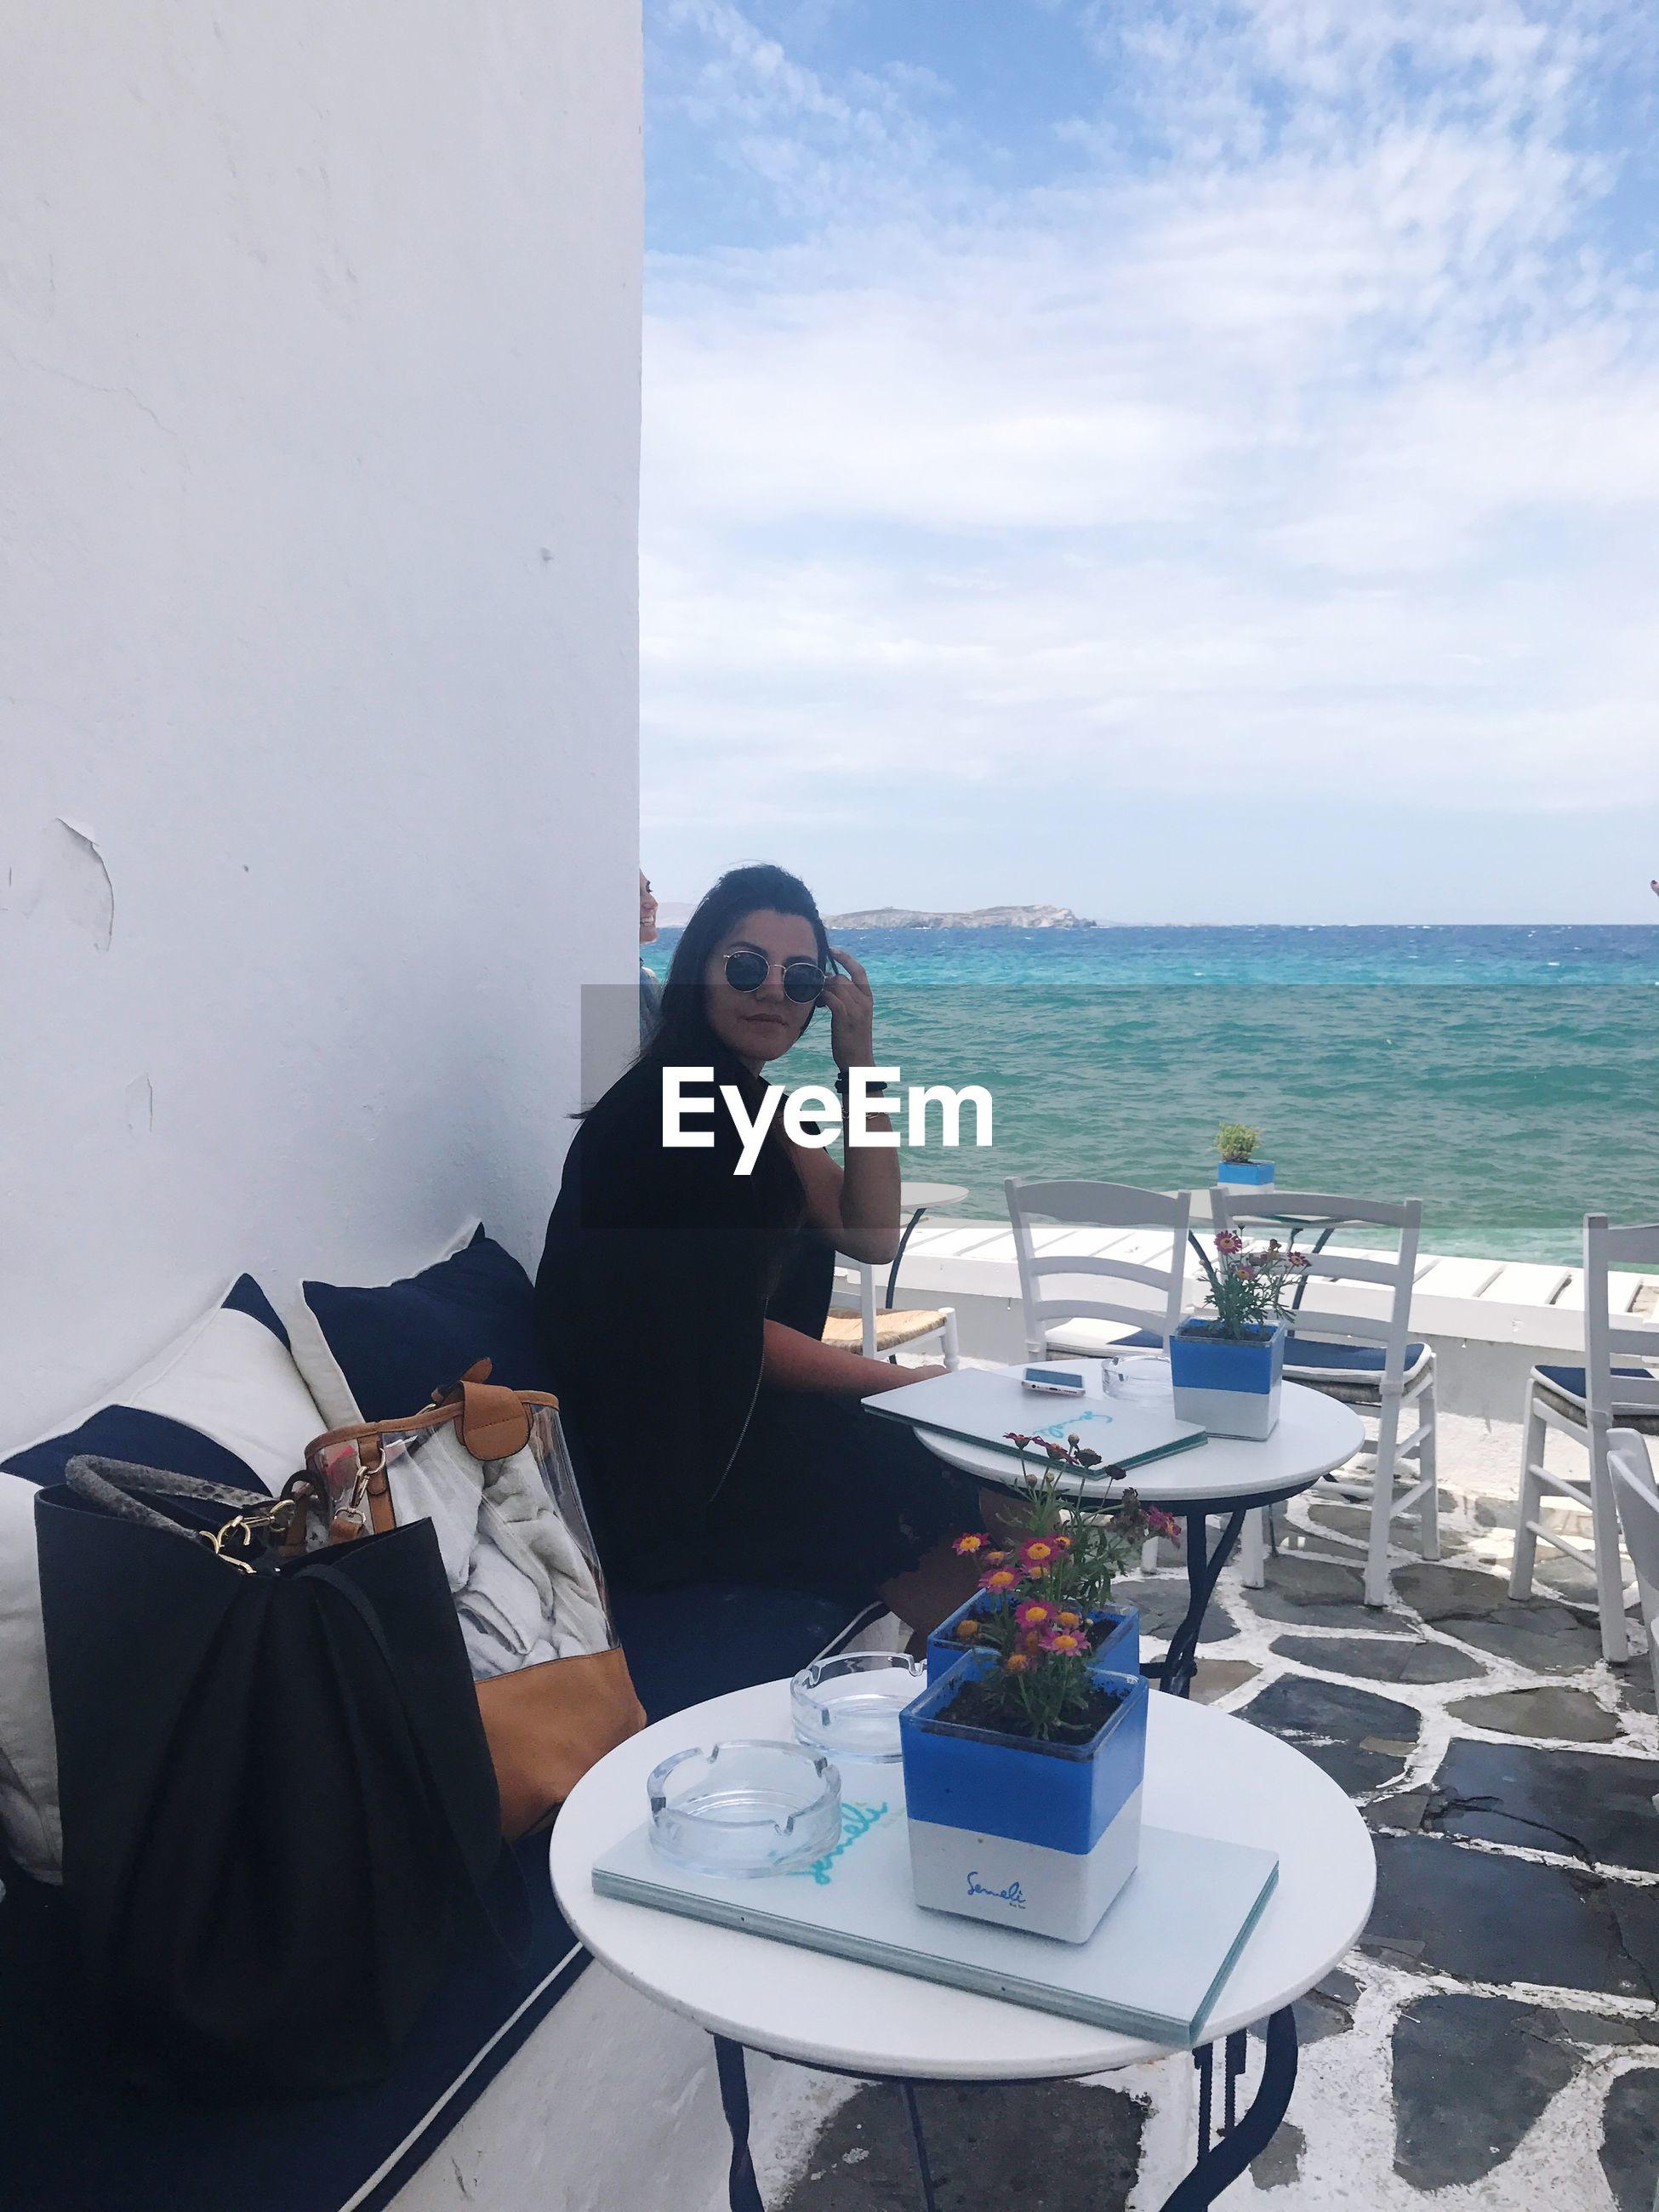 sea, wireless technology, one person, real people, technology, mobile phone, sky, sitting, using phone, horizon over water, table, portable information device, communication, food and drink, women, day, young adult, young women, water, outdoors, nature, photography themes, people